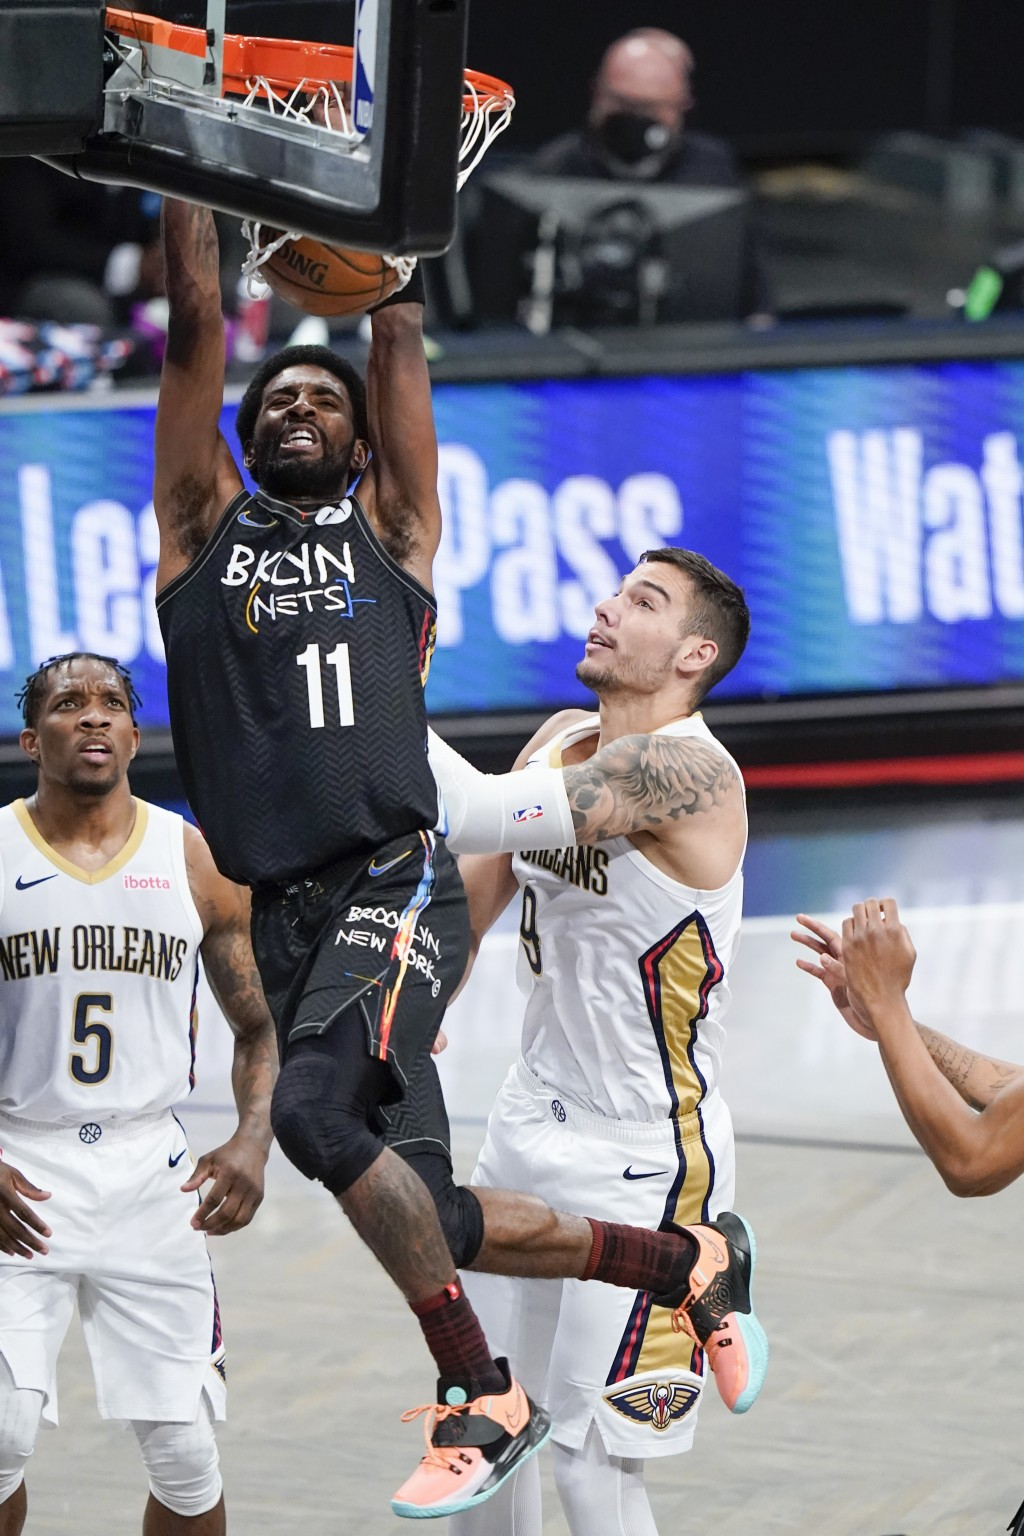 Brooklyn Nets' Kyrie Irving (11) dunks the ball in front of New Orleans Pelicans' Eric Bledsoe (5) and Willy Hernangomez (9) during the first half of ...